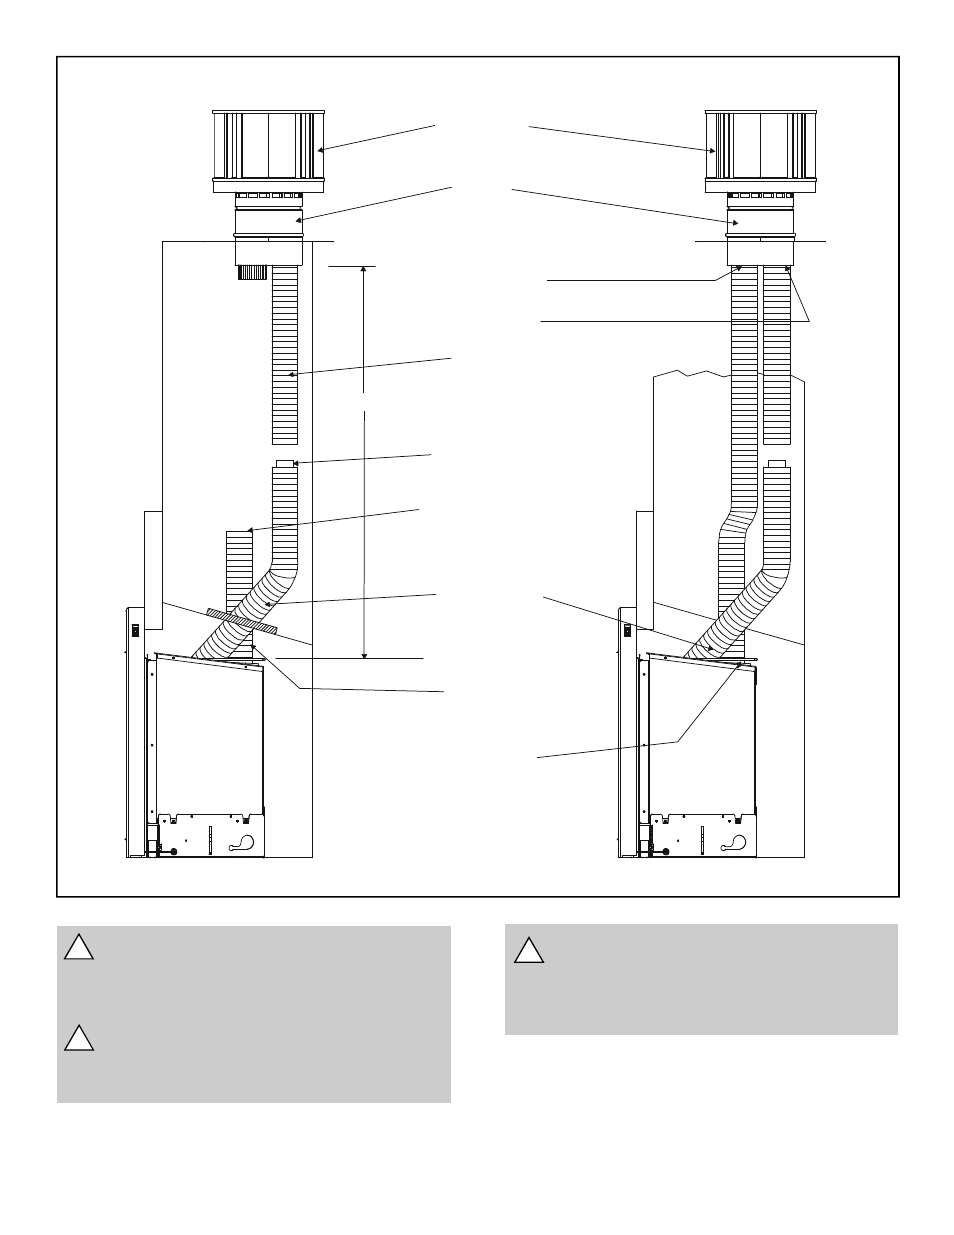 heat u0026 glo fireplace heat n glo fb in user manual page 16 23